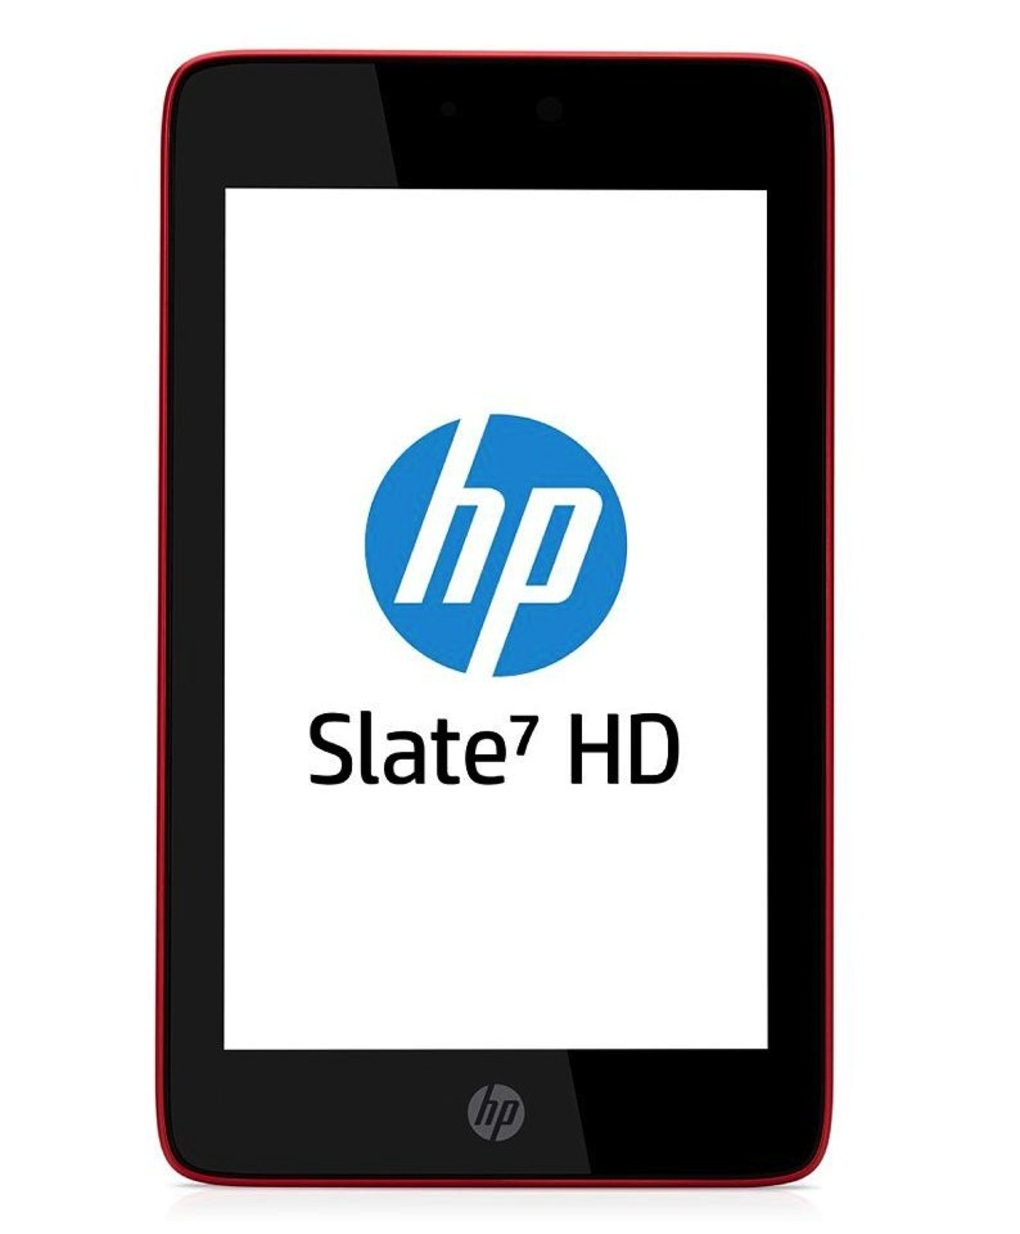 HP_Slate_7_HD_3G_front2_verge_super_wide.